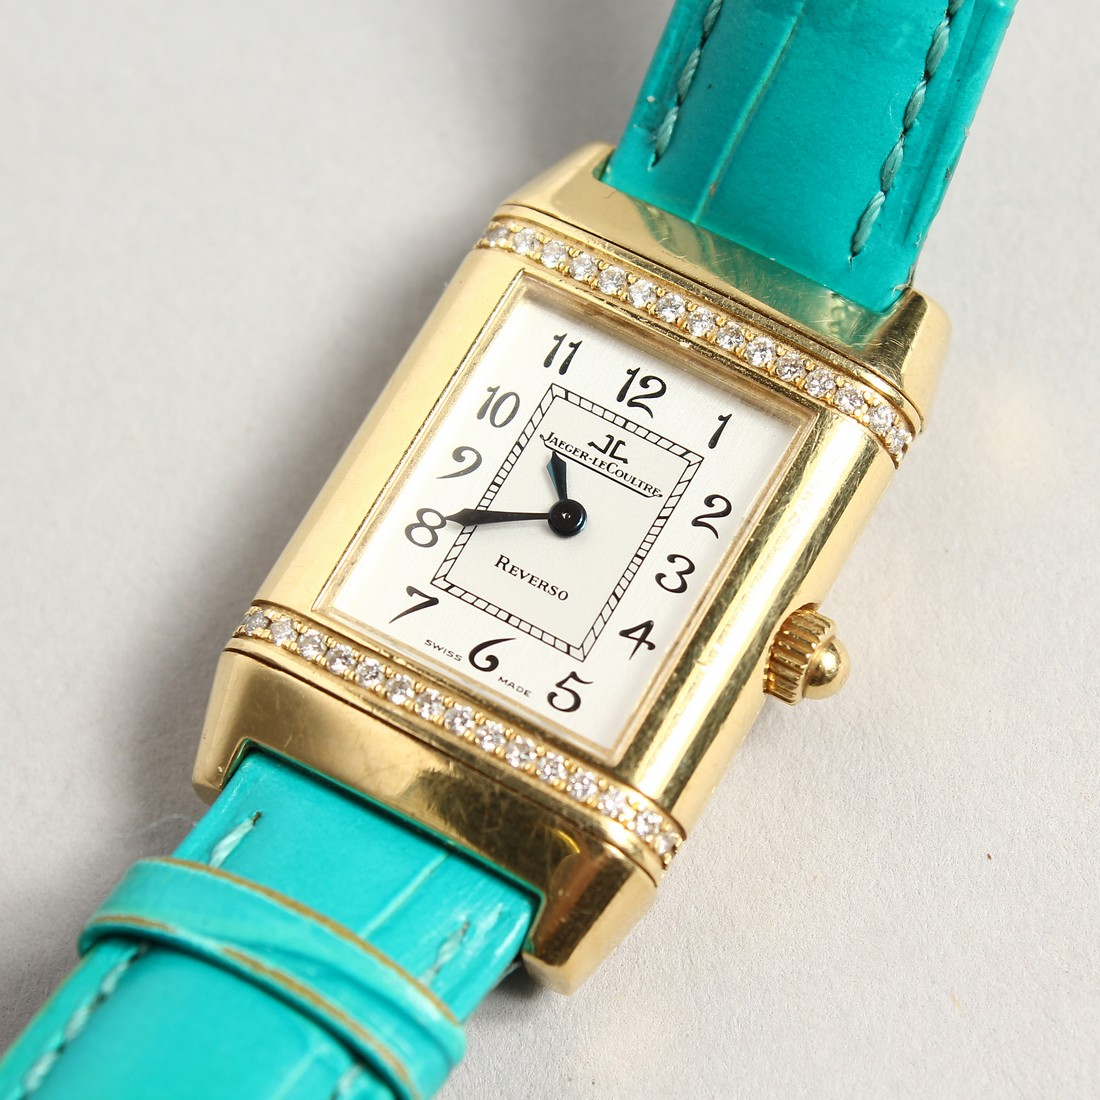 A VERY GOOD 18CT. GOLD AND DIAMOND JAGEUR LE COUTRE REVERSE WRISTWATCH, with a leather strap.